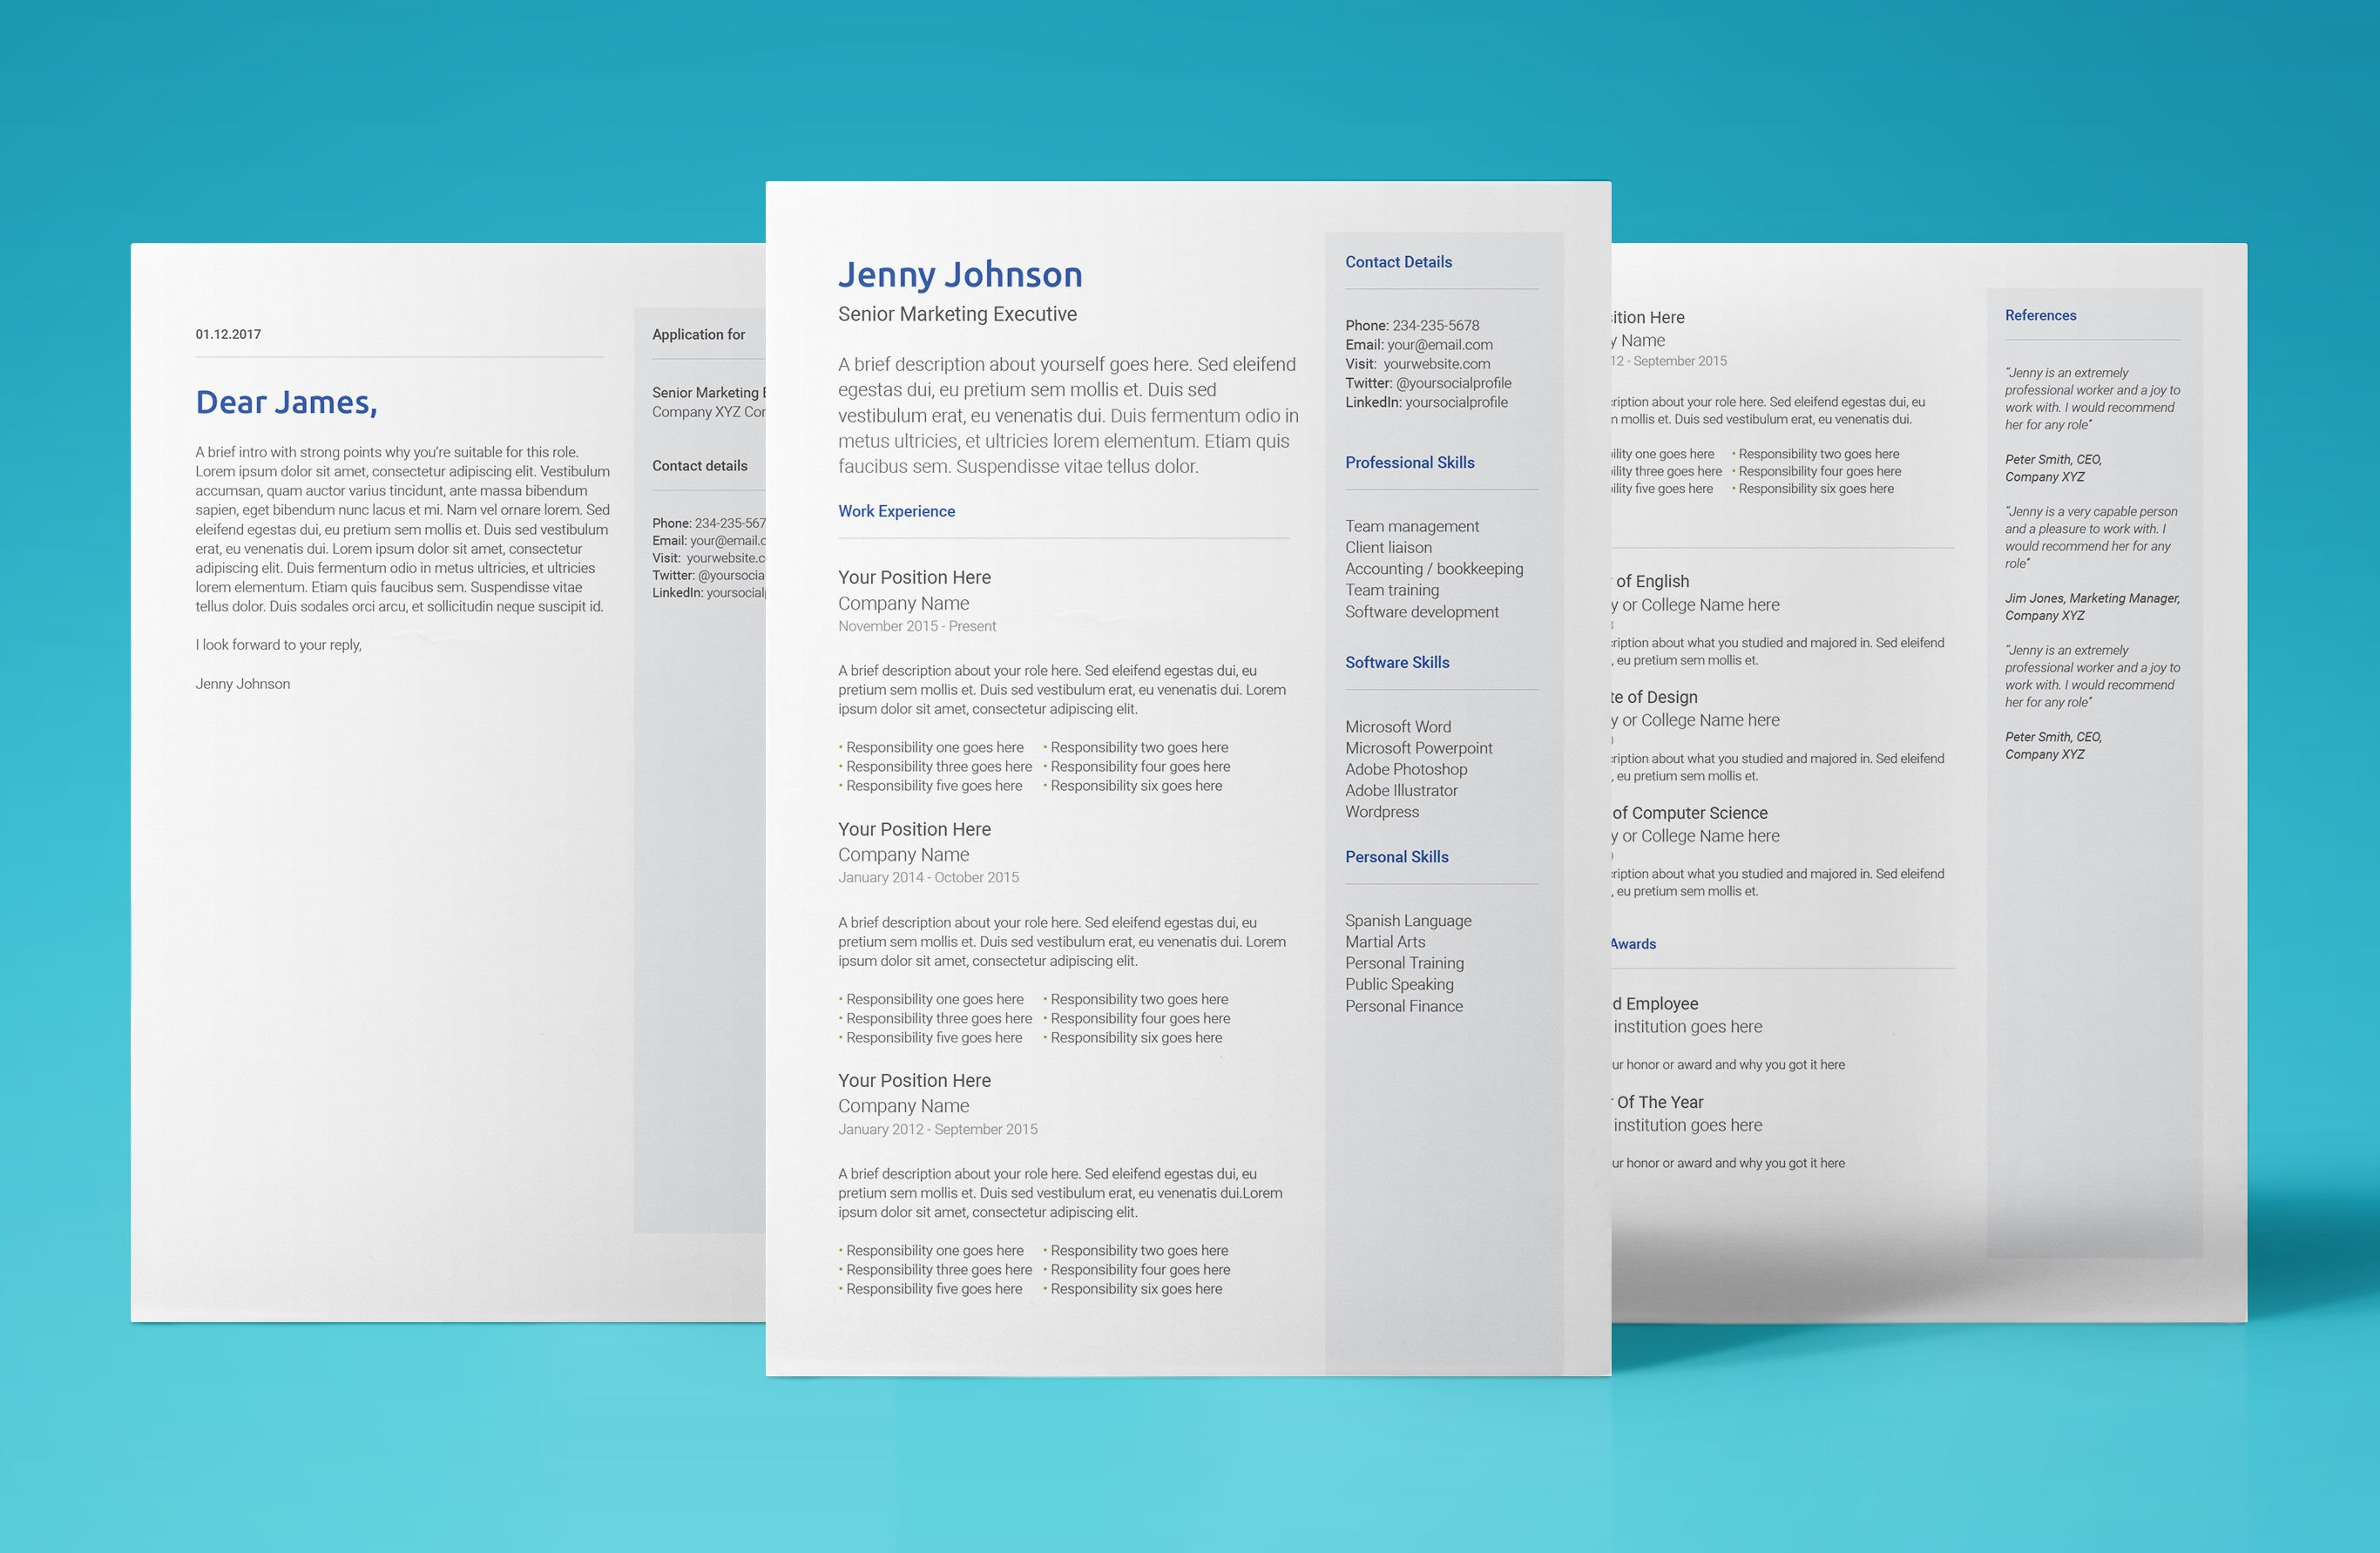 Free Google Docs Resume Template - Download & Use Now! [ 2019 ]